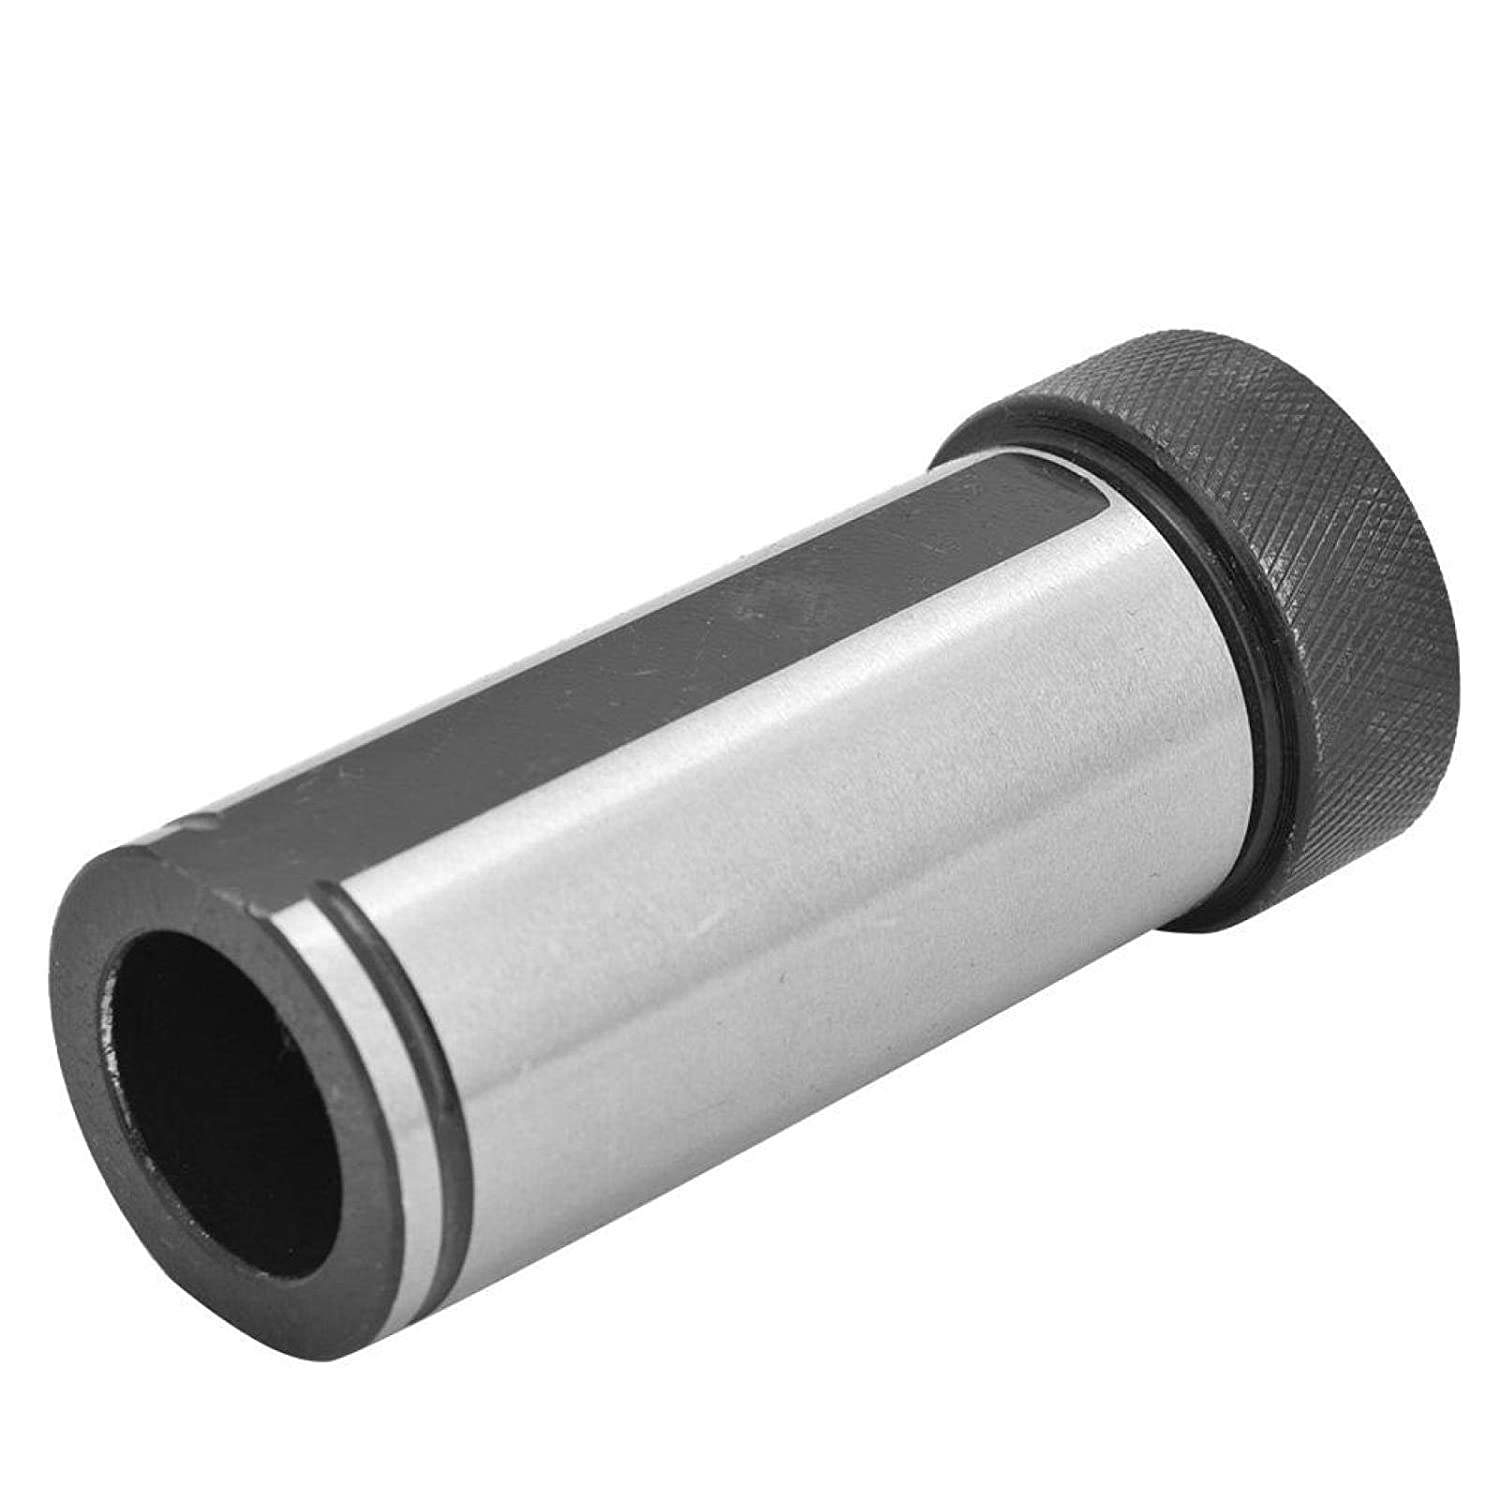 D32-16 Steel Spring Collet Lathe Milling Tool Tool Holder Bushing for Machining Centers for CNC Engraving Machine